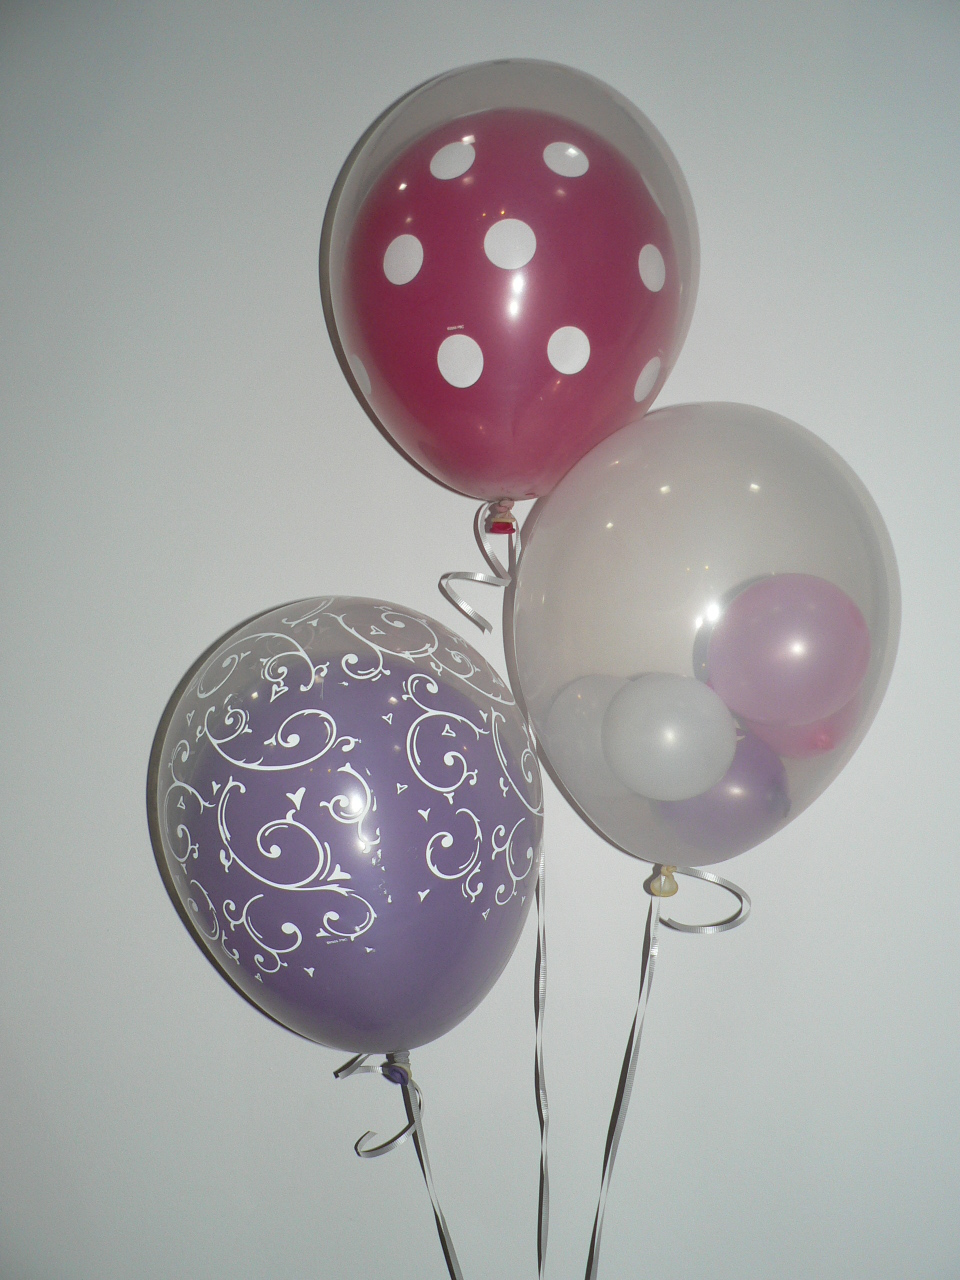 Twisty Balloons By Lisa Kaelye S 5th Birthday Party